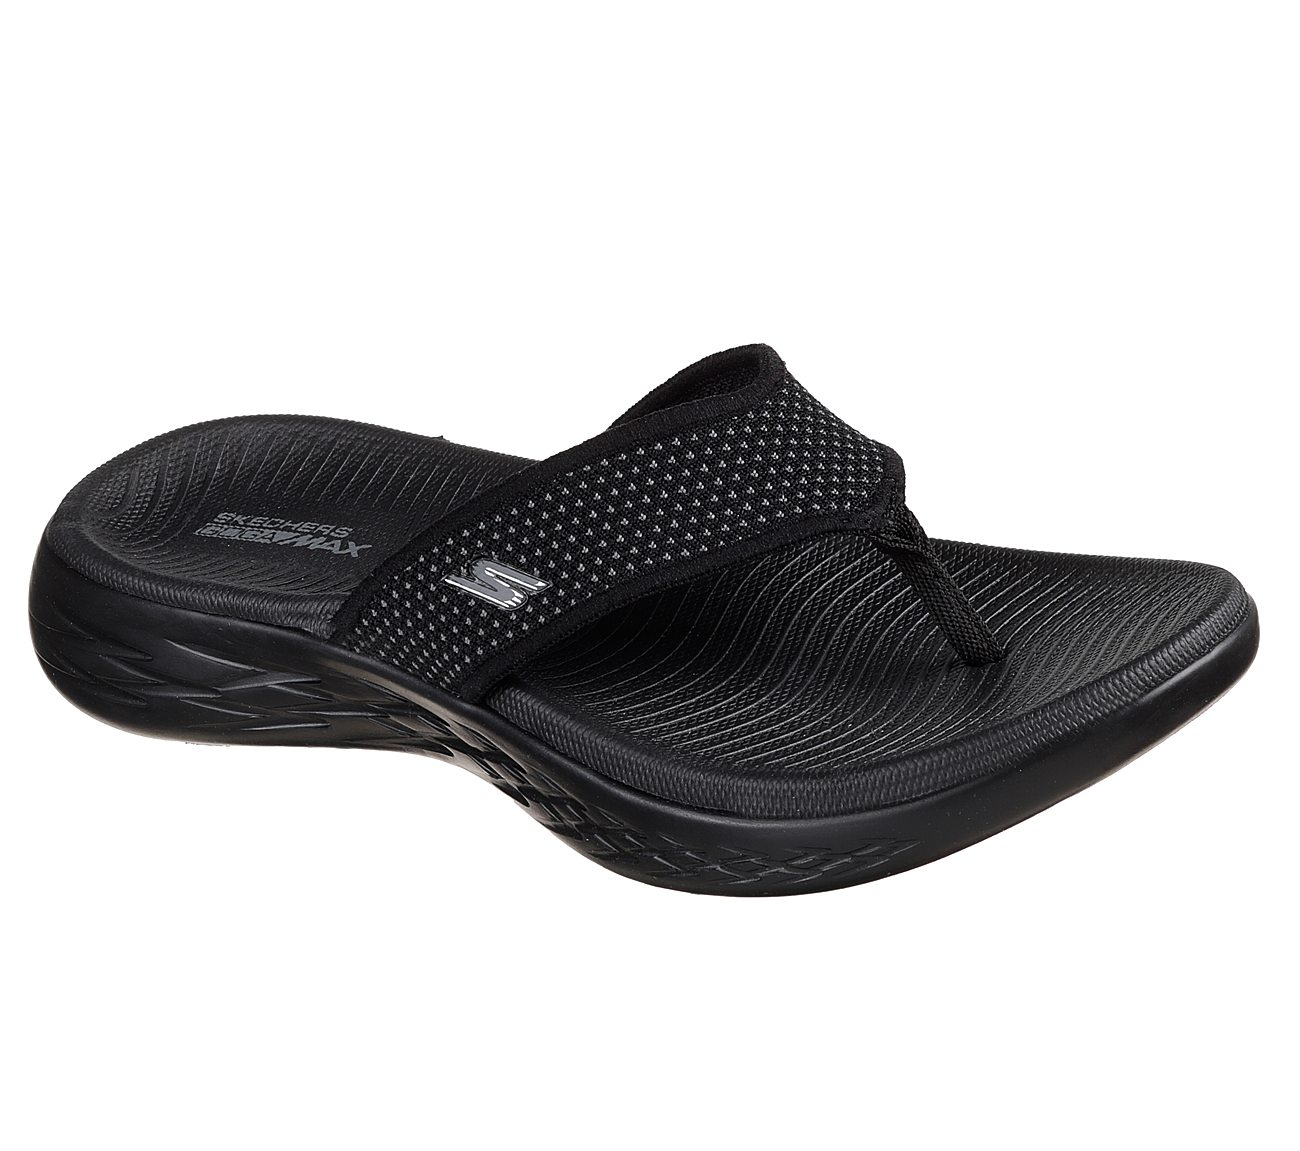 SKECHERS Thongs black 15300 BBK